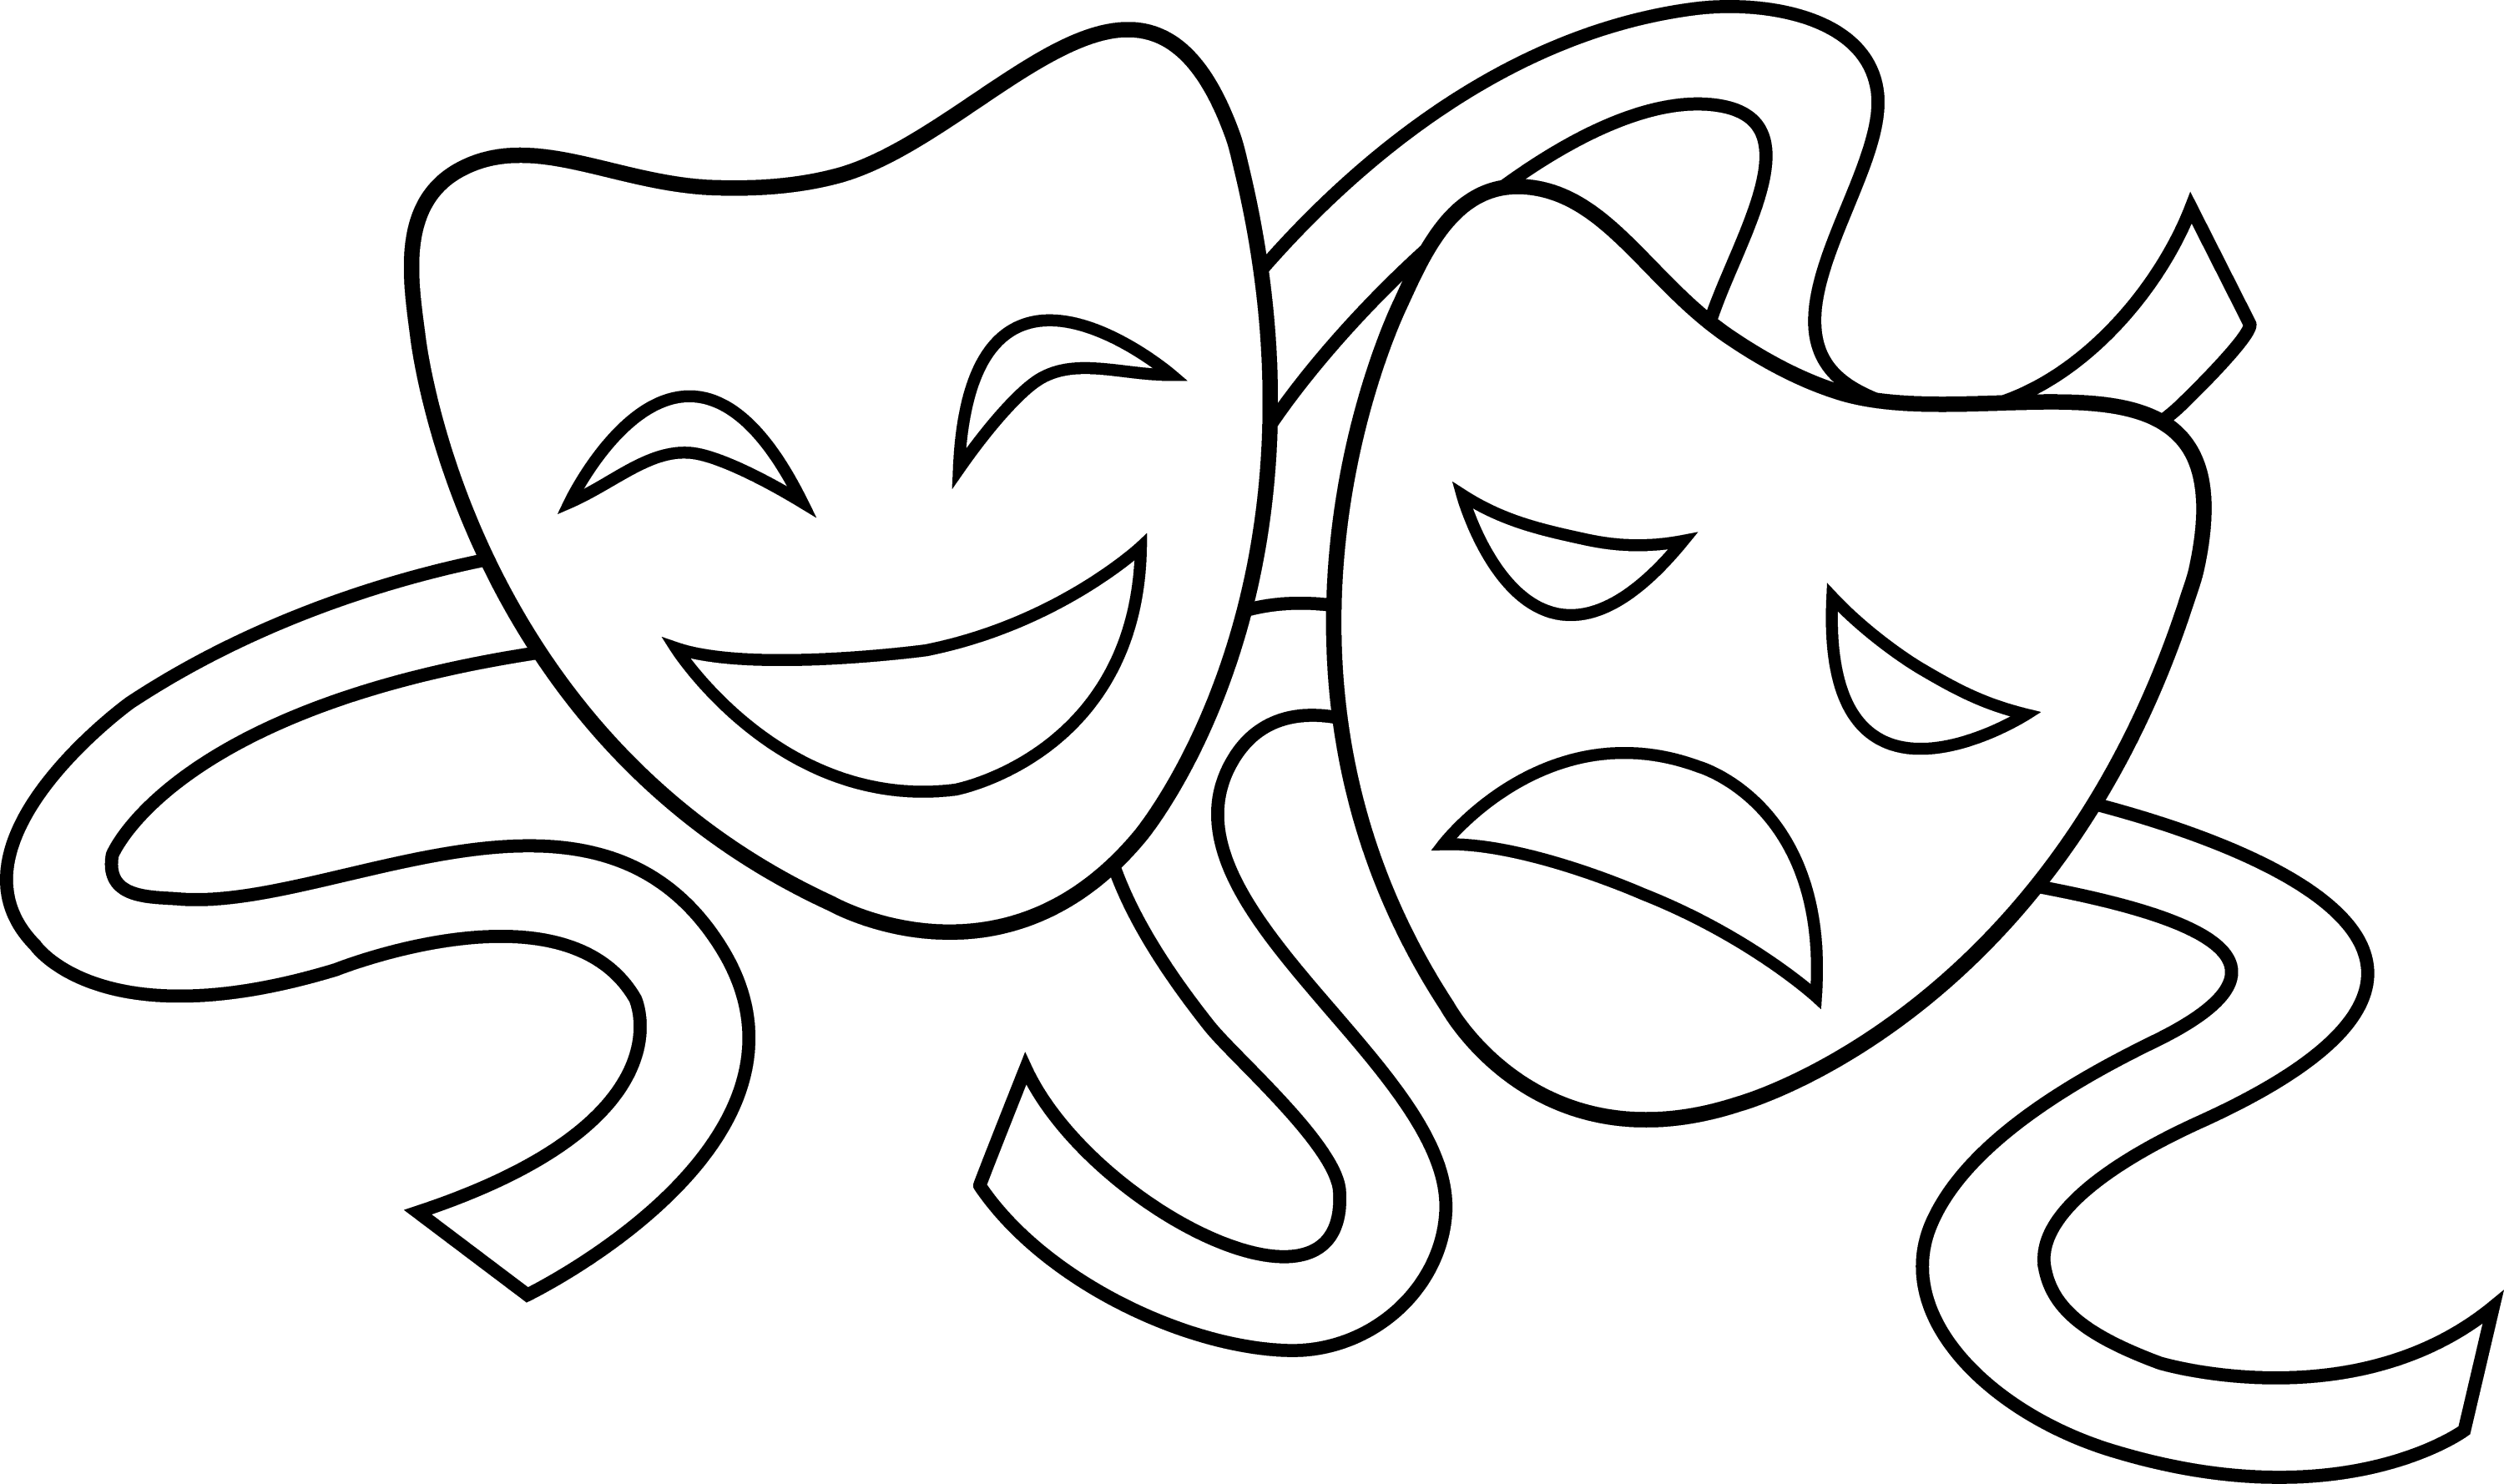 coloring pages of drama masks - photo#21